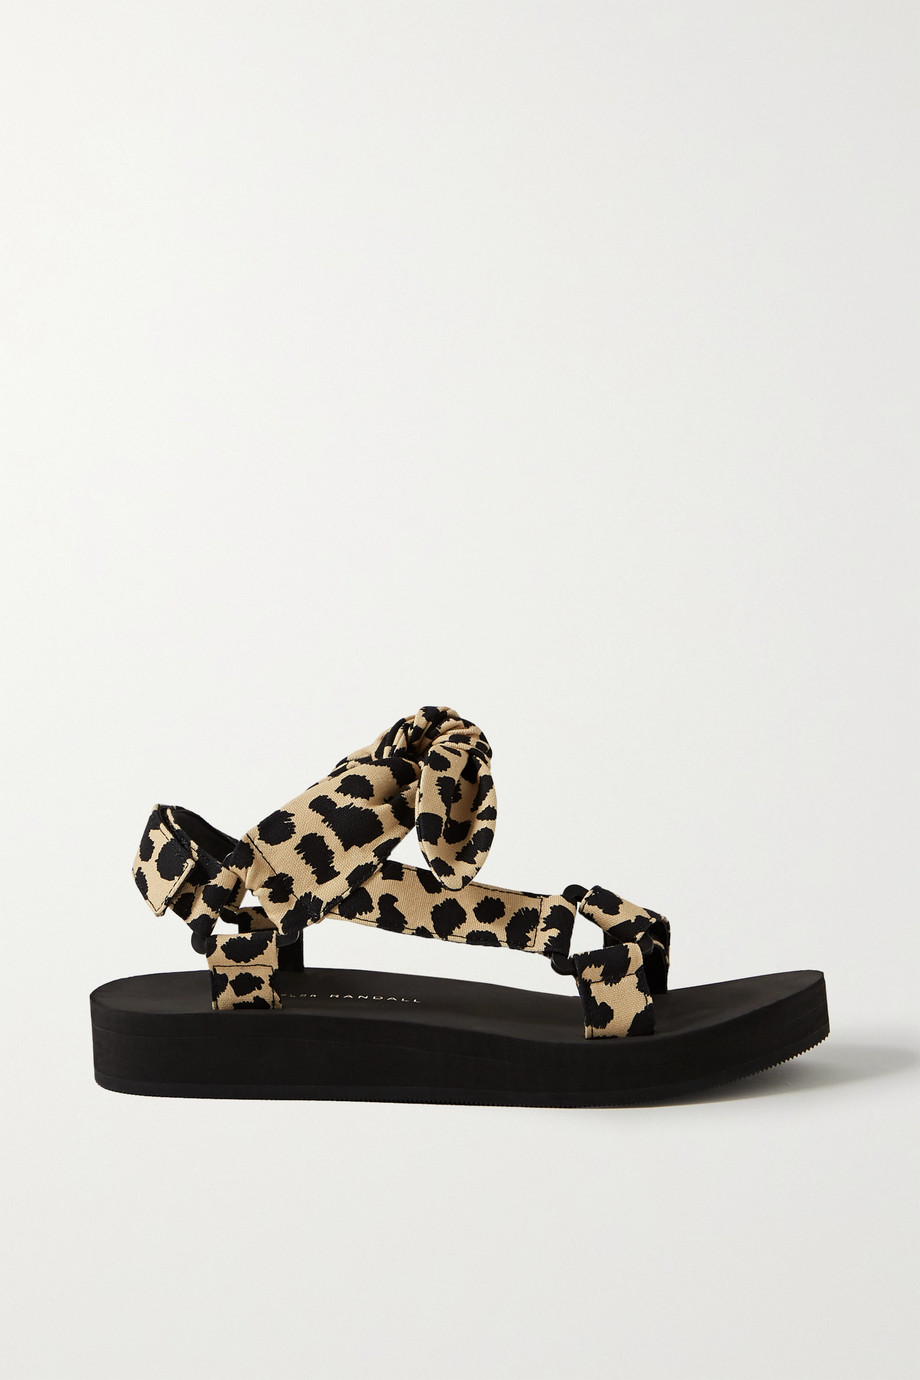 Loeffler Randall Maisie bow-embellished leopard-print canvas sandals